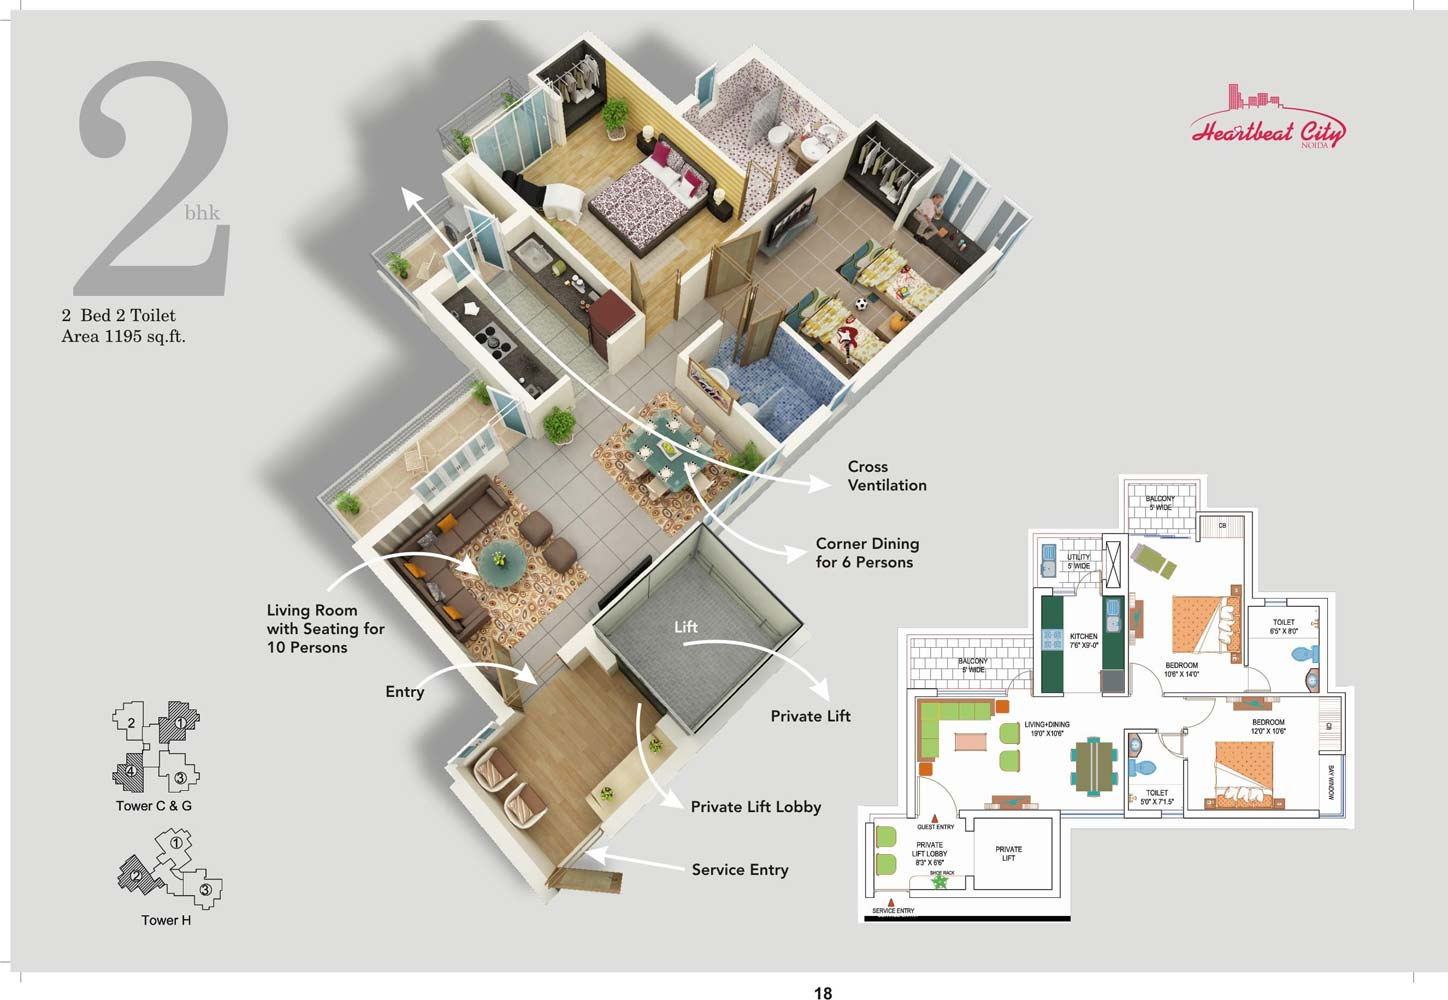 amrapali heart beat city floor plan 2BHK 1195 sqft